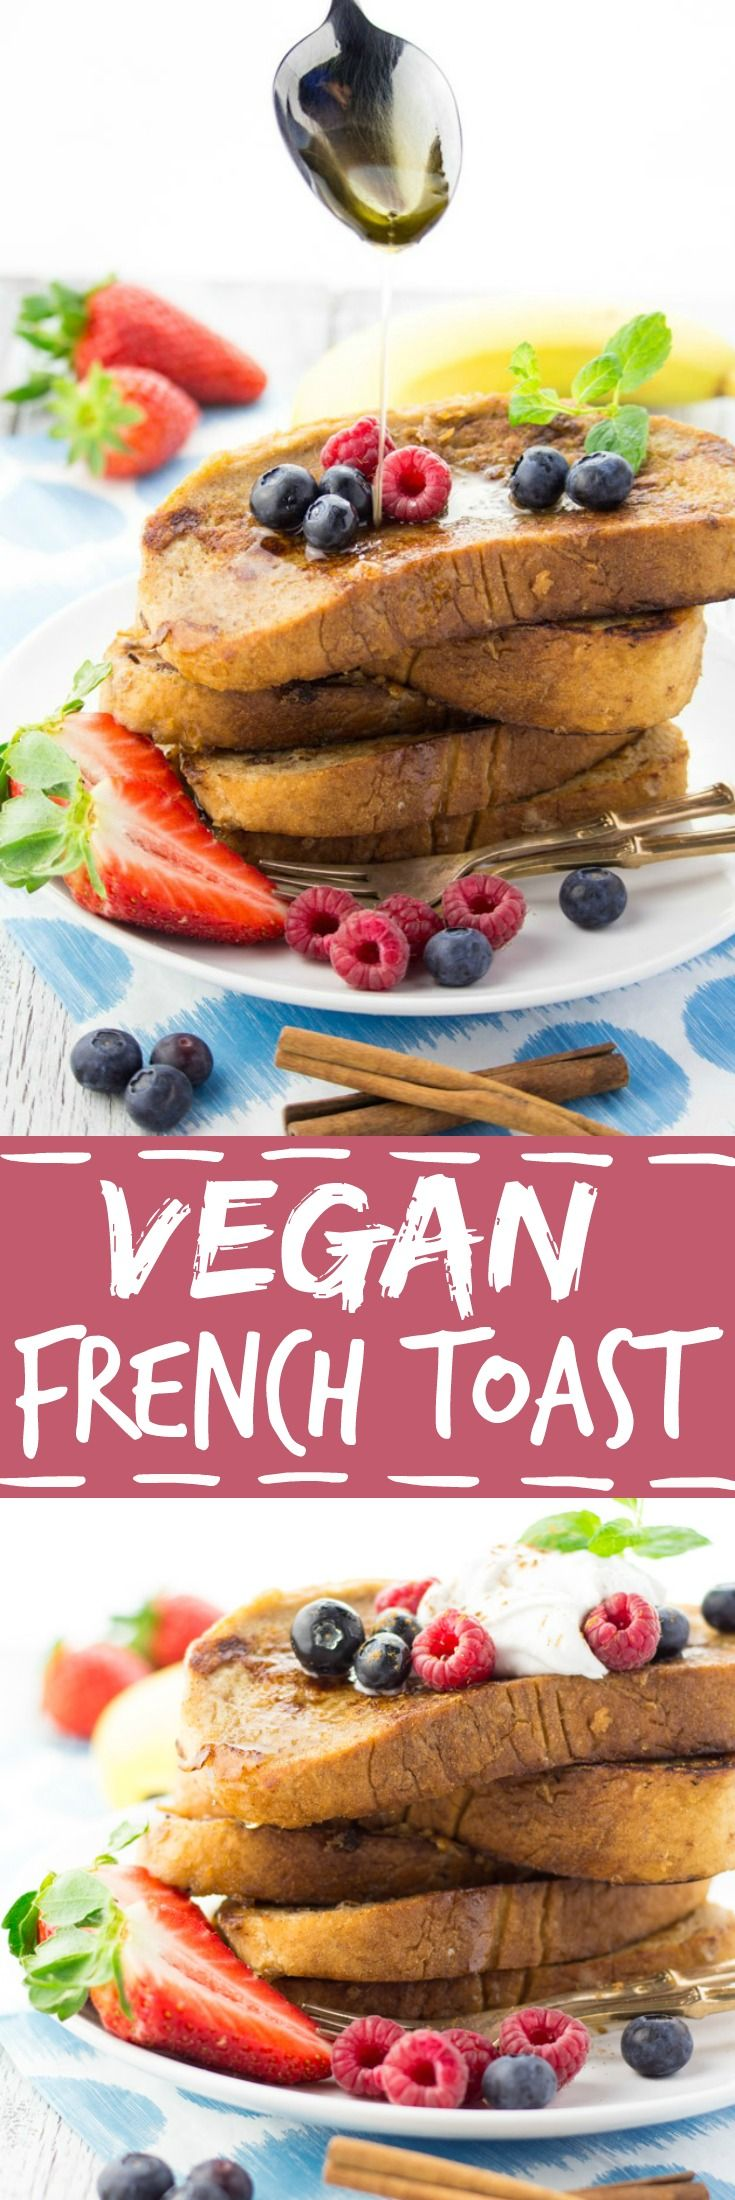 This vegan French toast with coconut cream and berries is super easy to make and so delicious! No eggs or milk required!